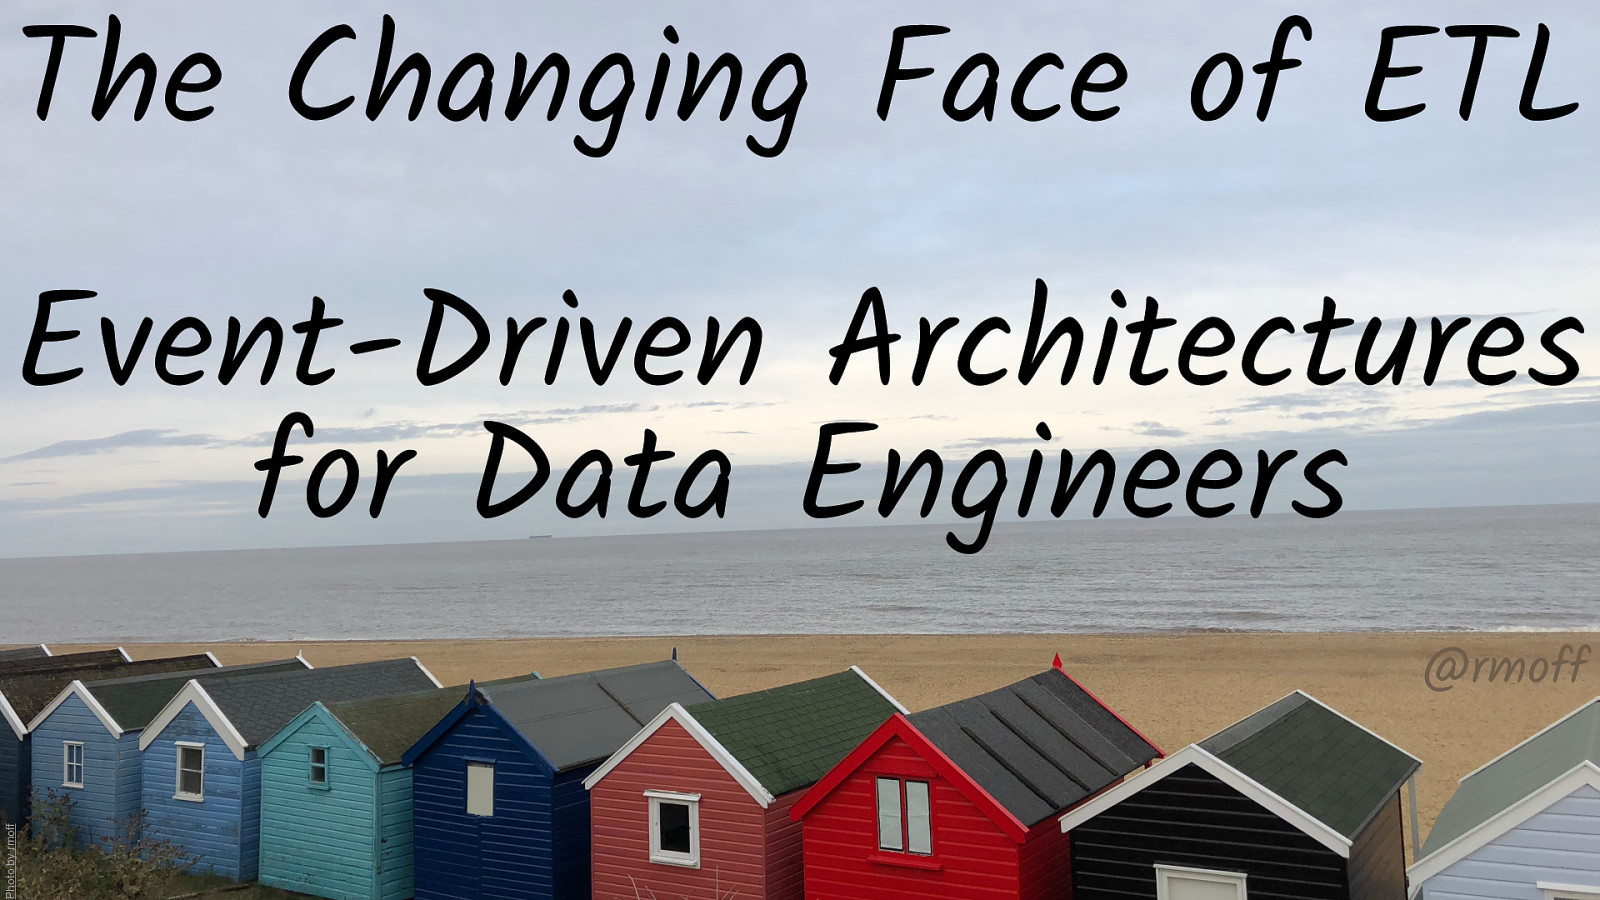 The Changing Face of ETL: Event-Driven Architectures for Data Engineers